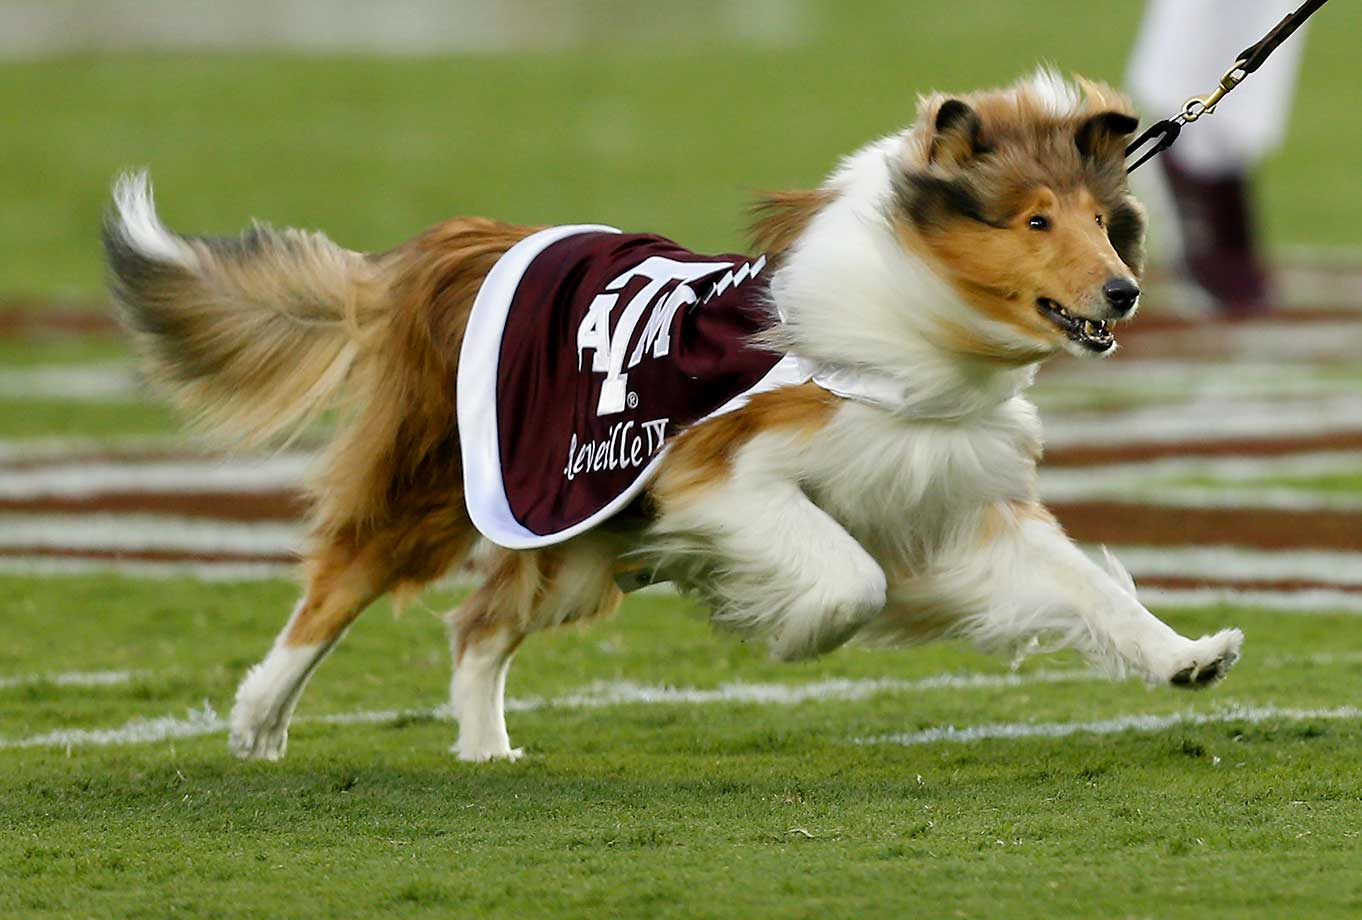 No. 9: Reveille is a fun mascot for Texas A&M and the Aggies because she's a living, breathing dog. Beautiful and elegant, she's a good change-up from typical costumed mascots. (Text credit: Andrew Wittrey/SI.com)